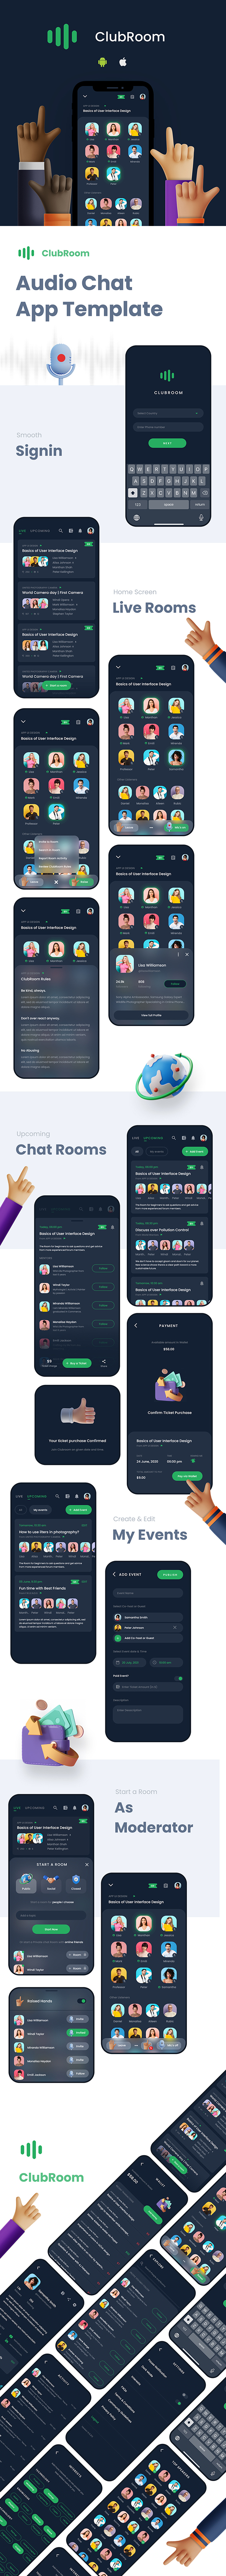 Audio Chat Android App Template + iOS App Template | FLUTTER 2 - 1